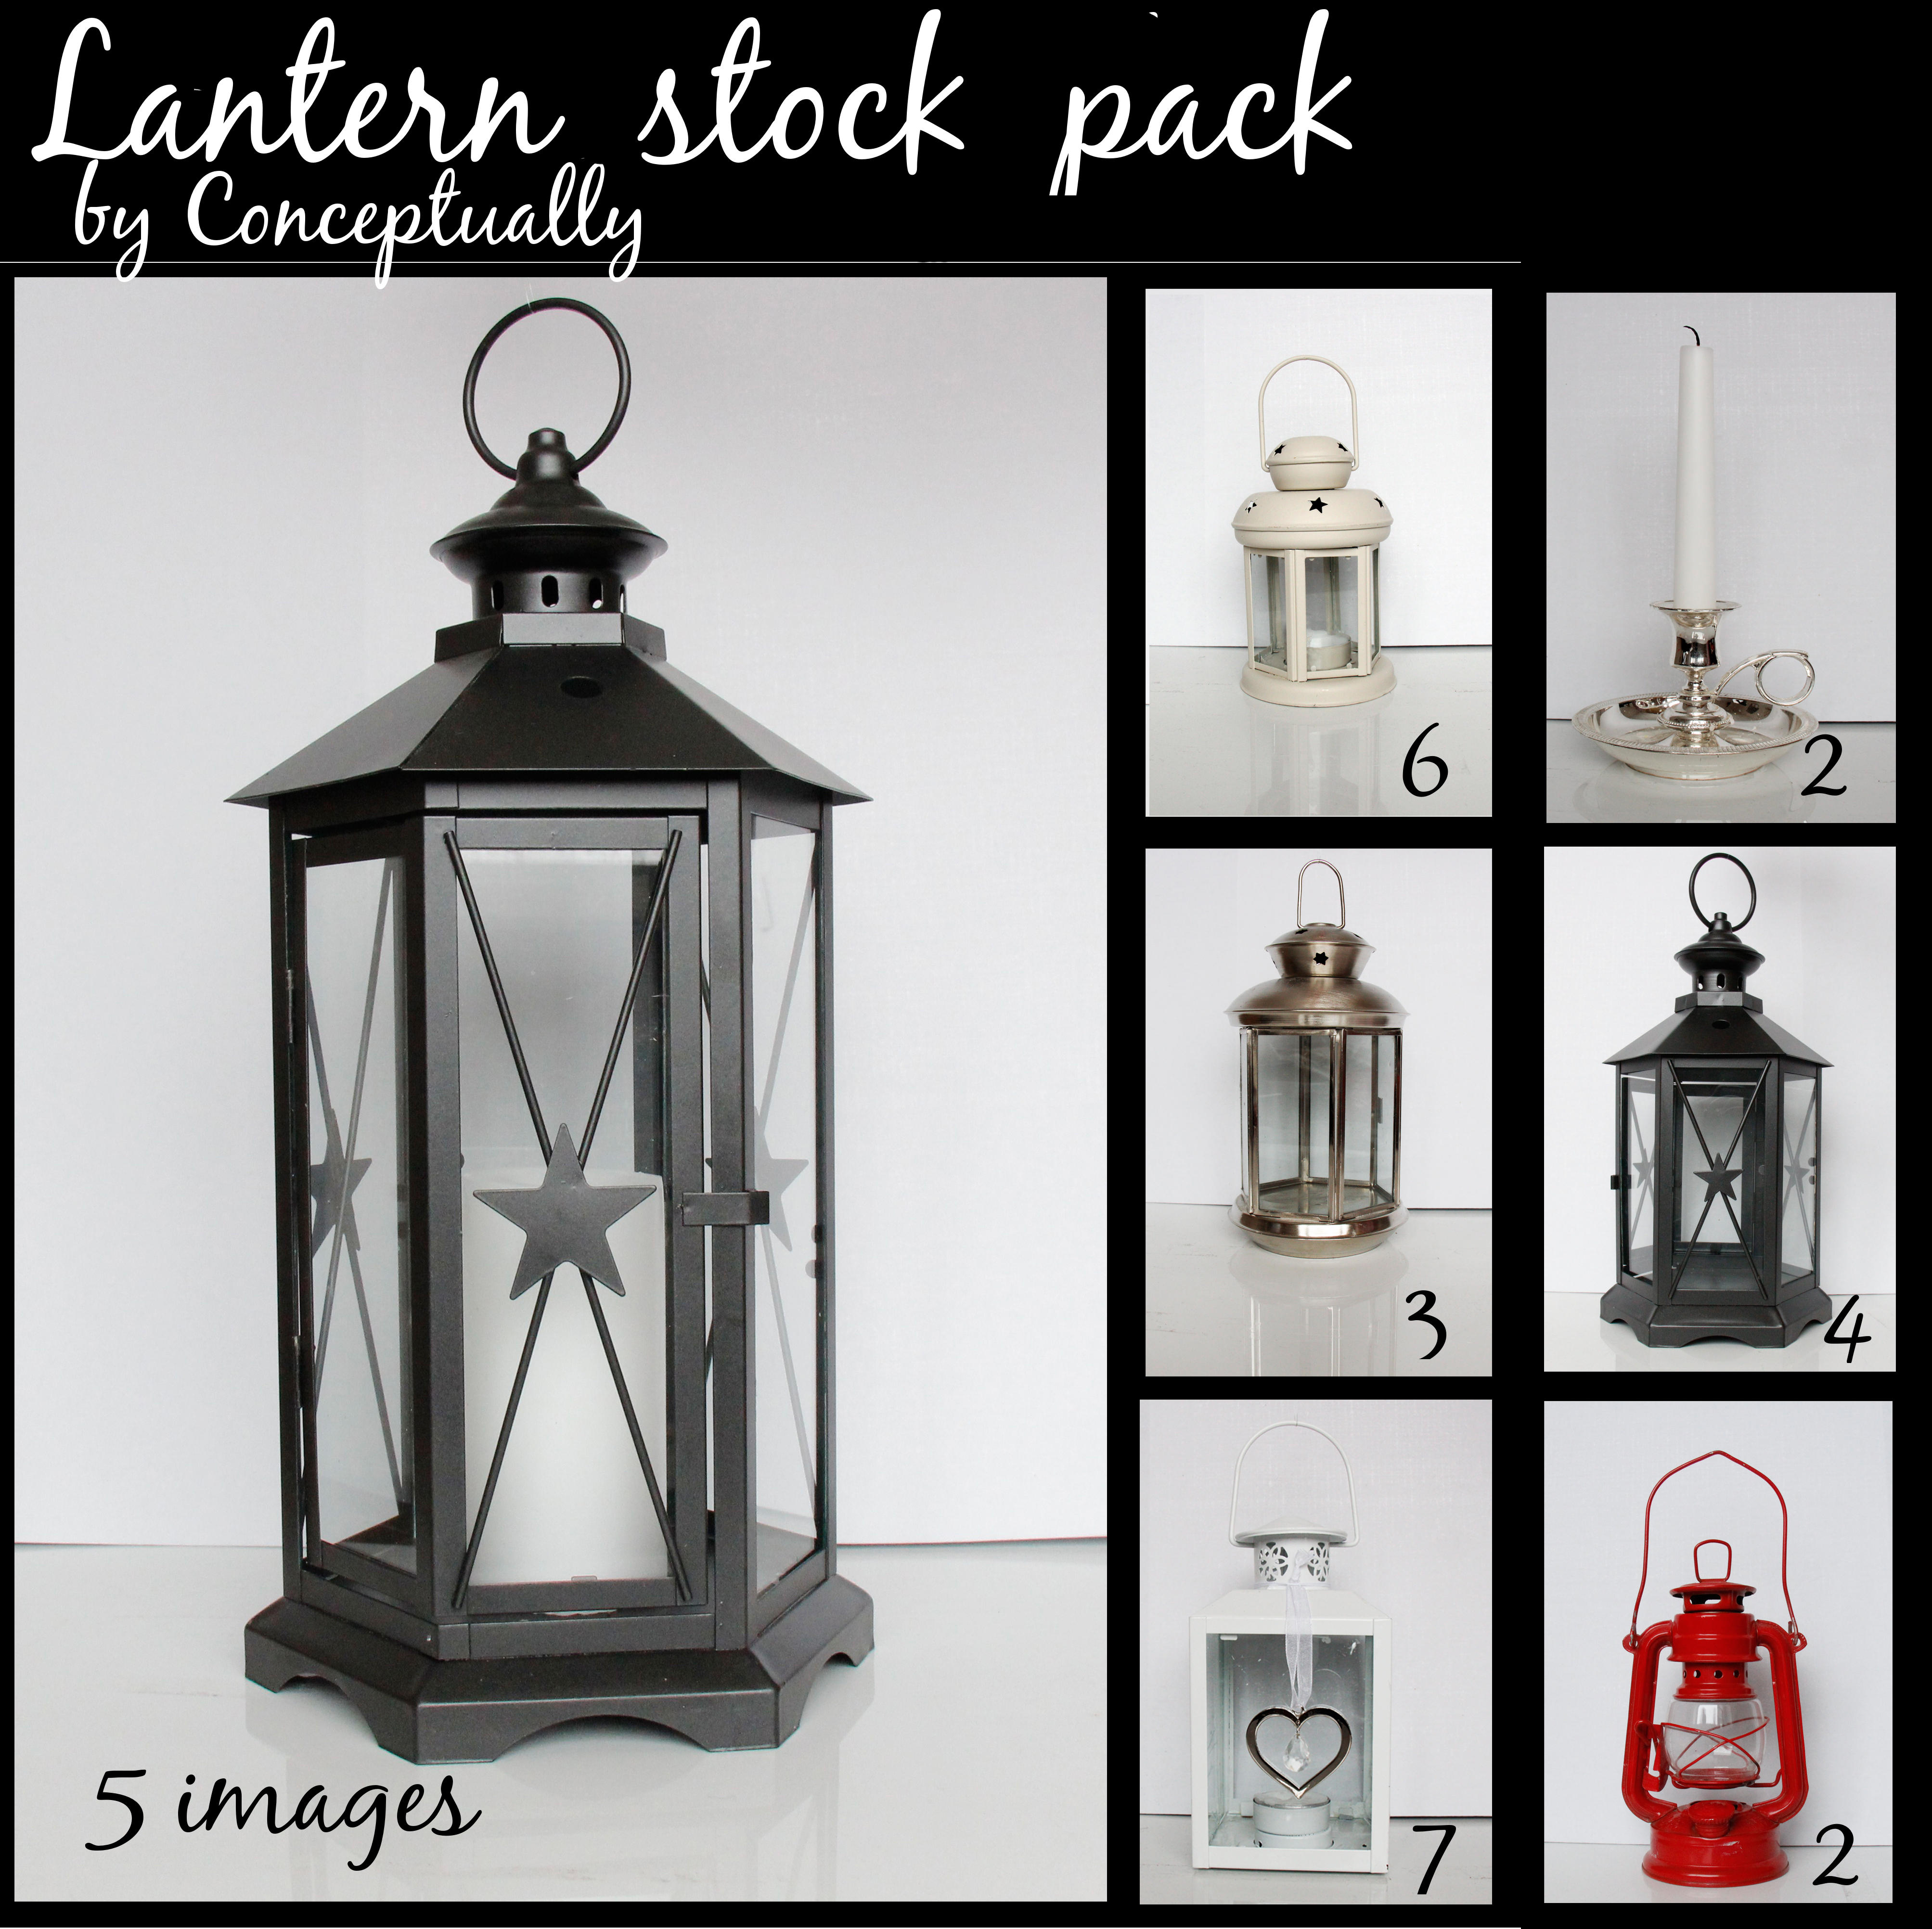 Lantern STOCK pack by conceptually